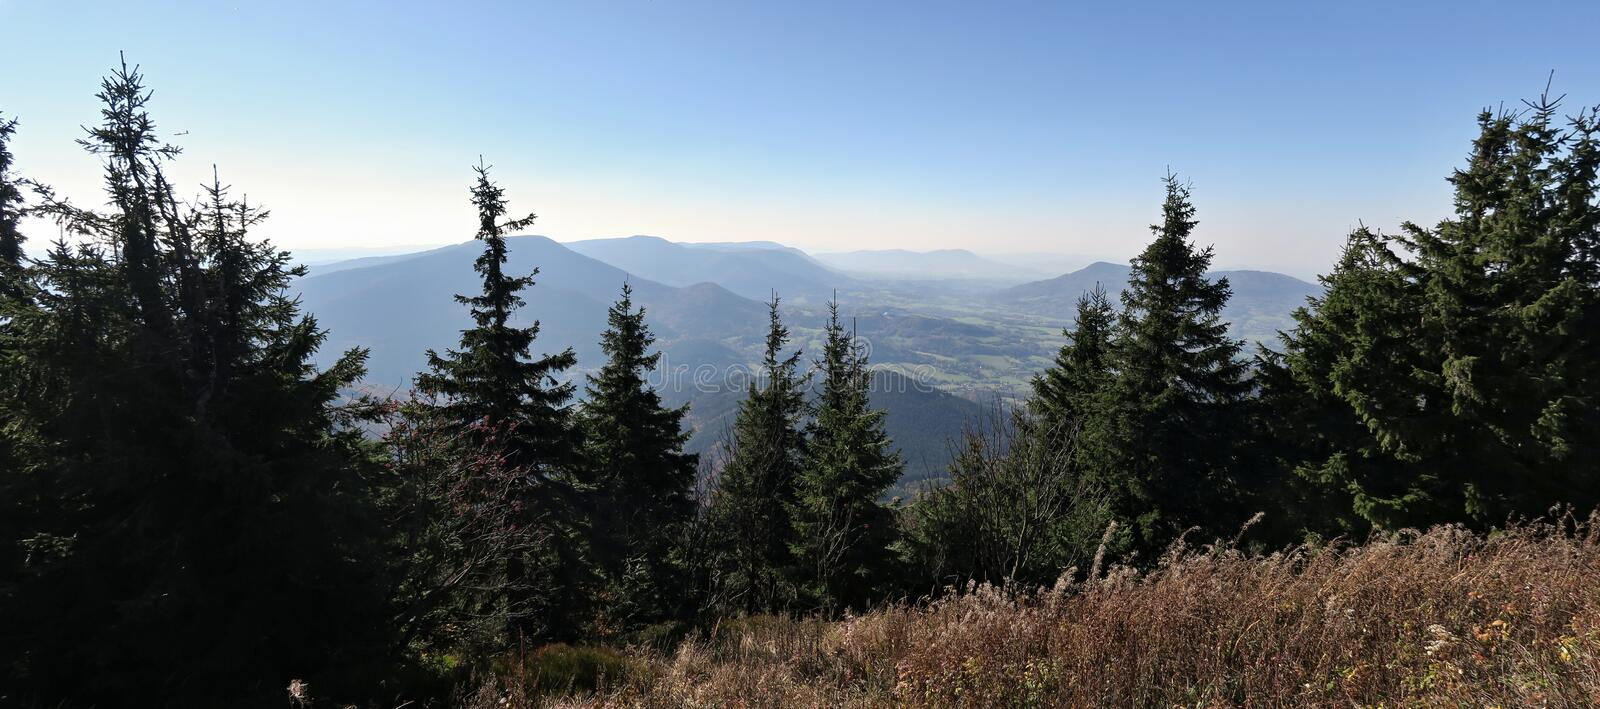 South view from the summit of Lysa hora mountain in Beskydy mountains royalty free stock photos